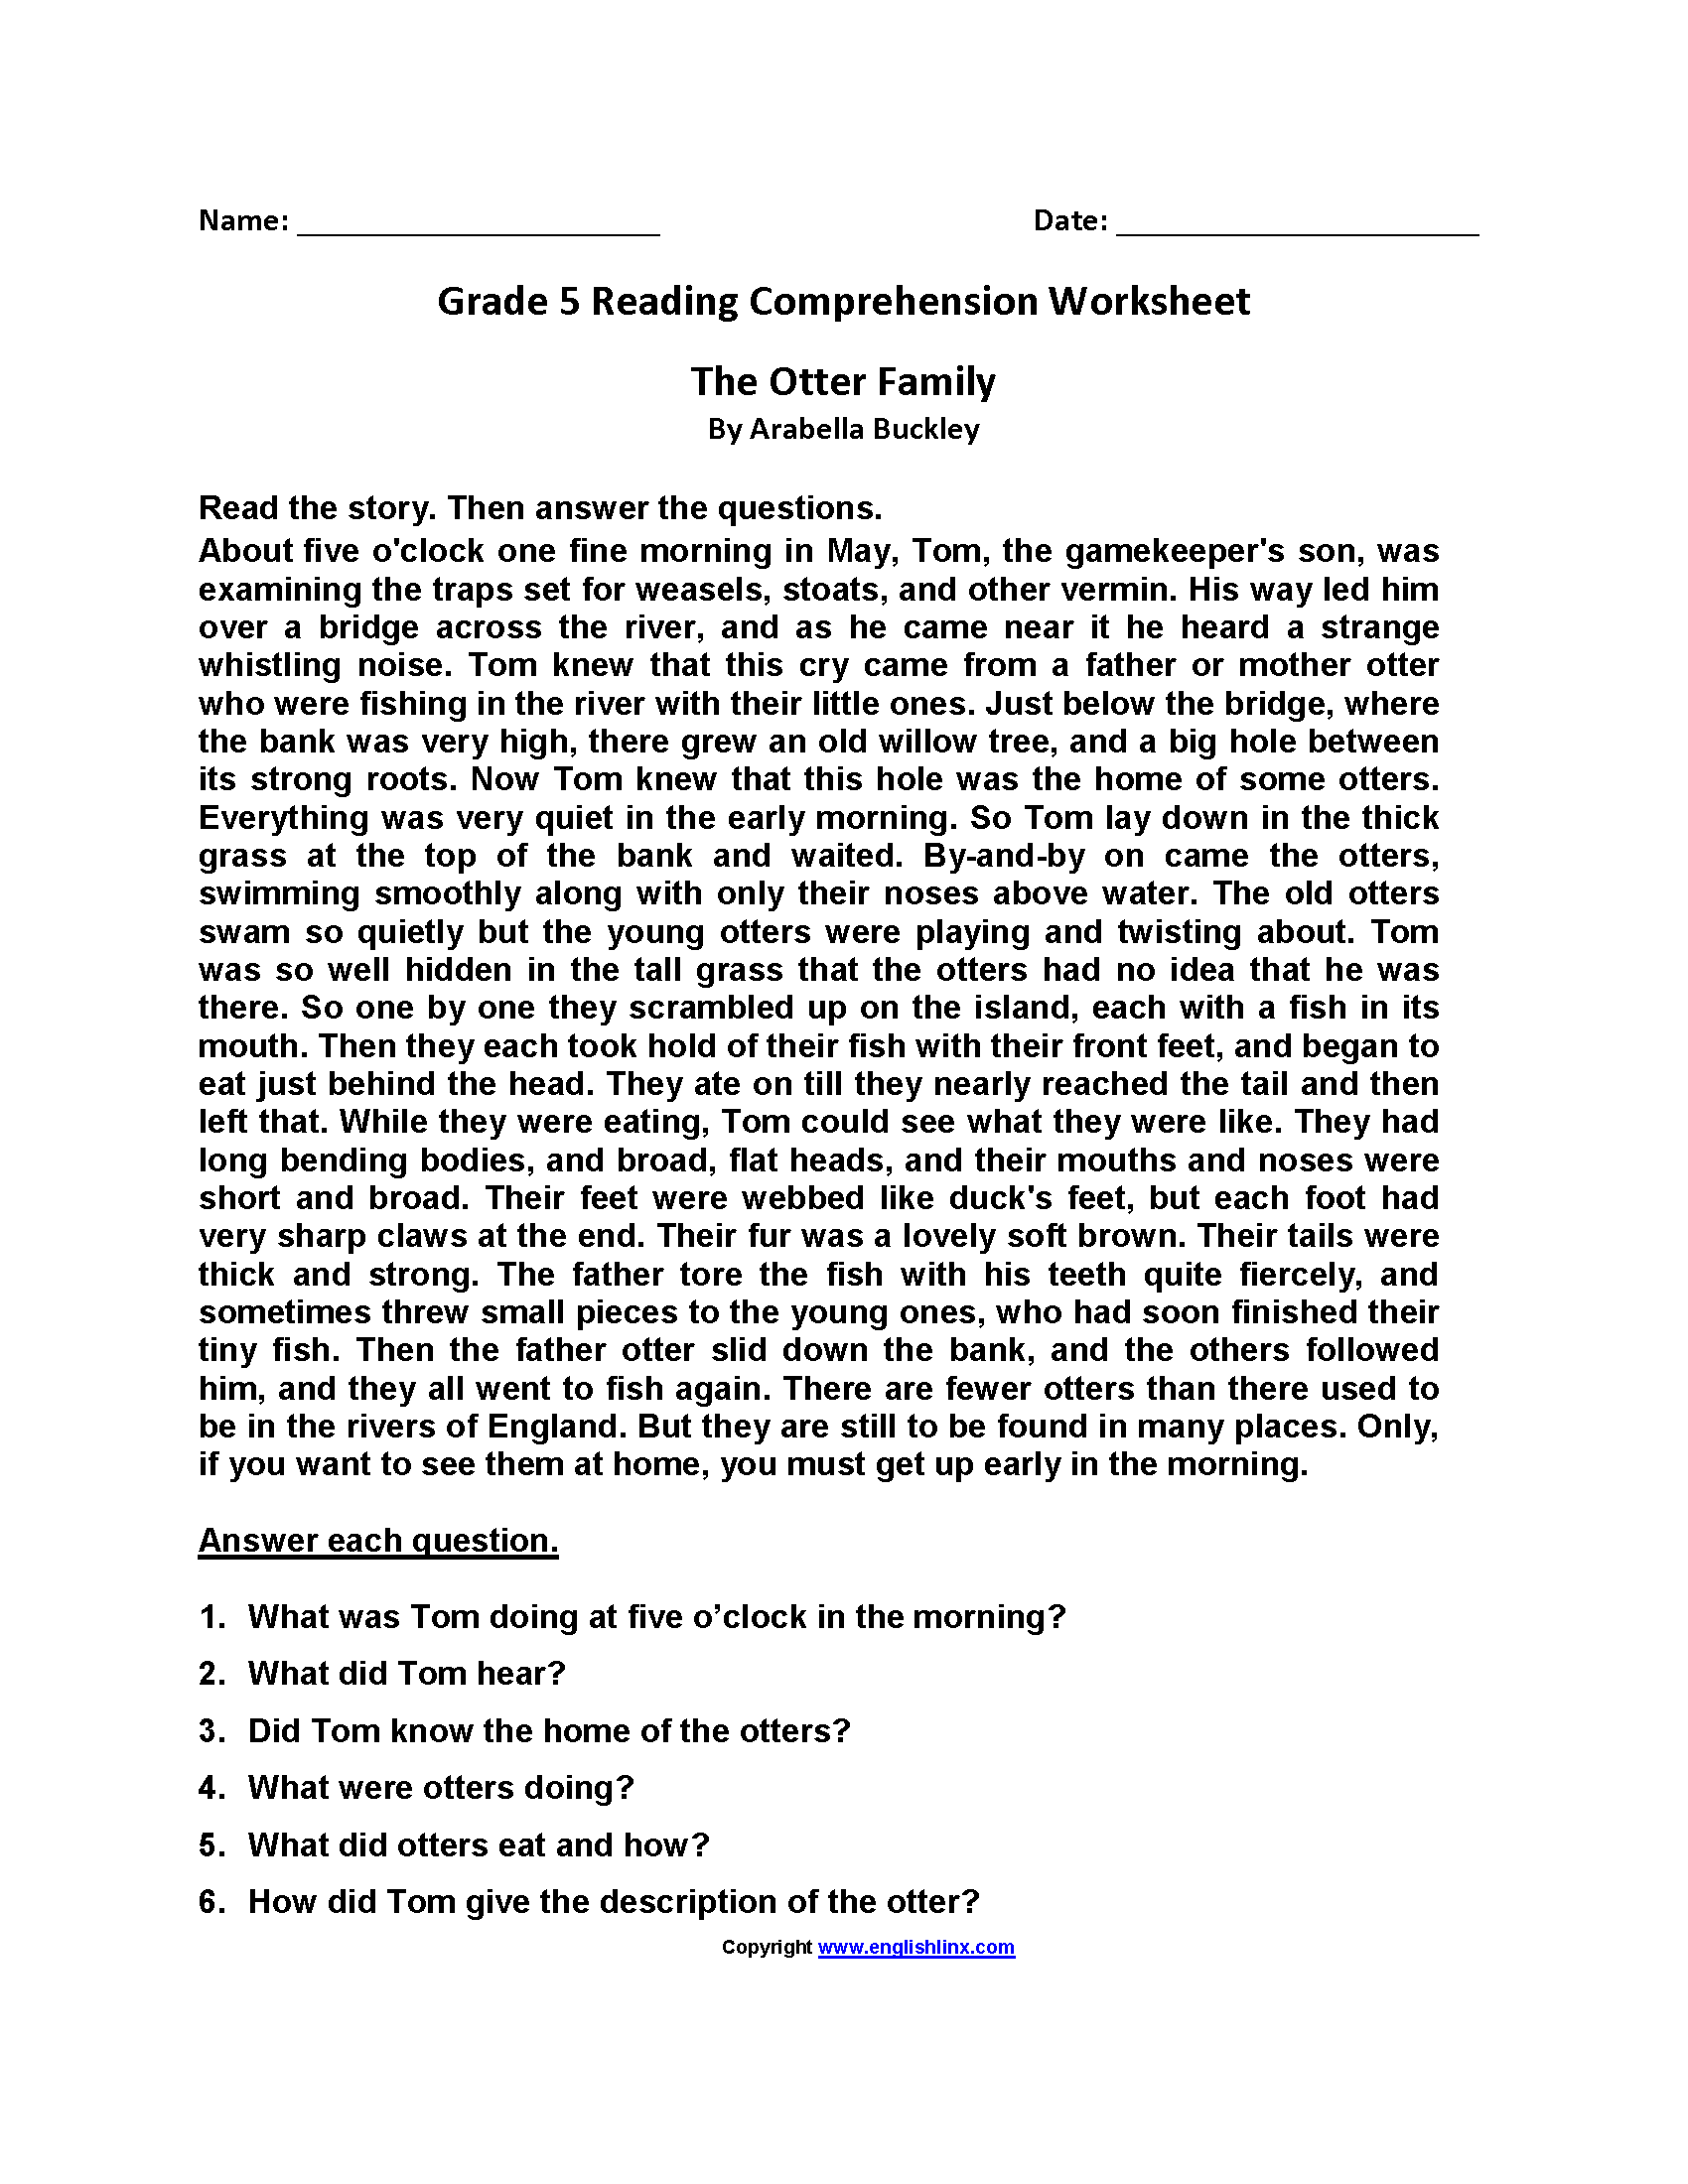 Dibels Daze Practice Worksheet